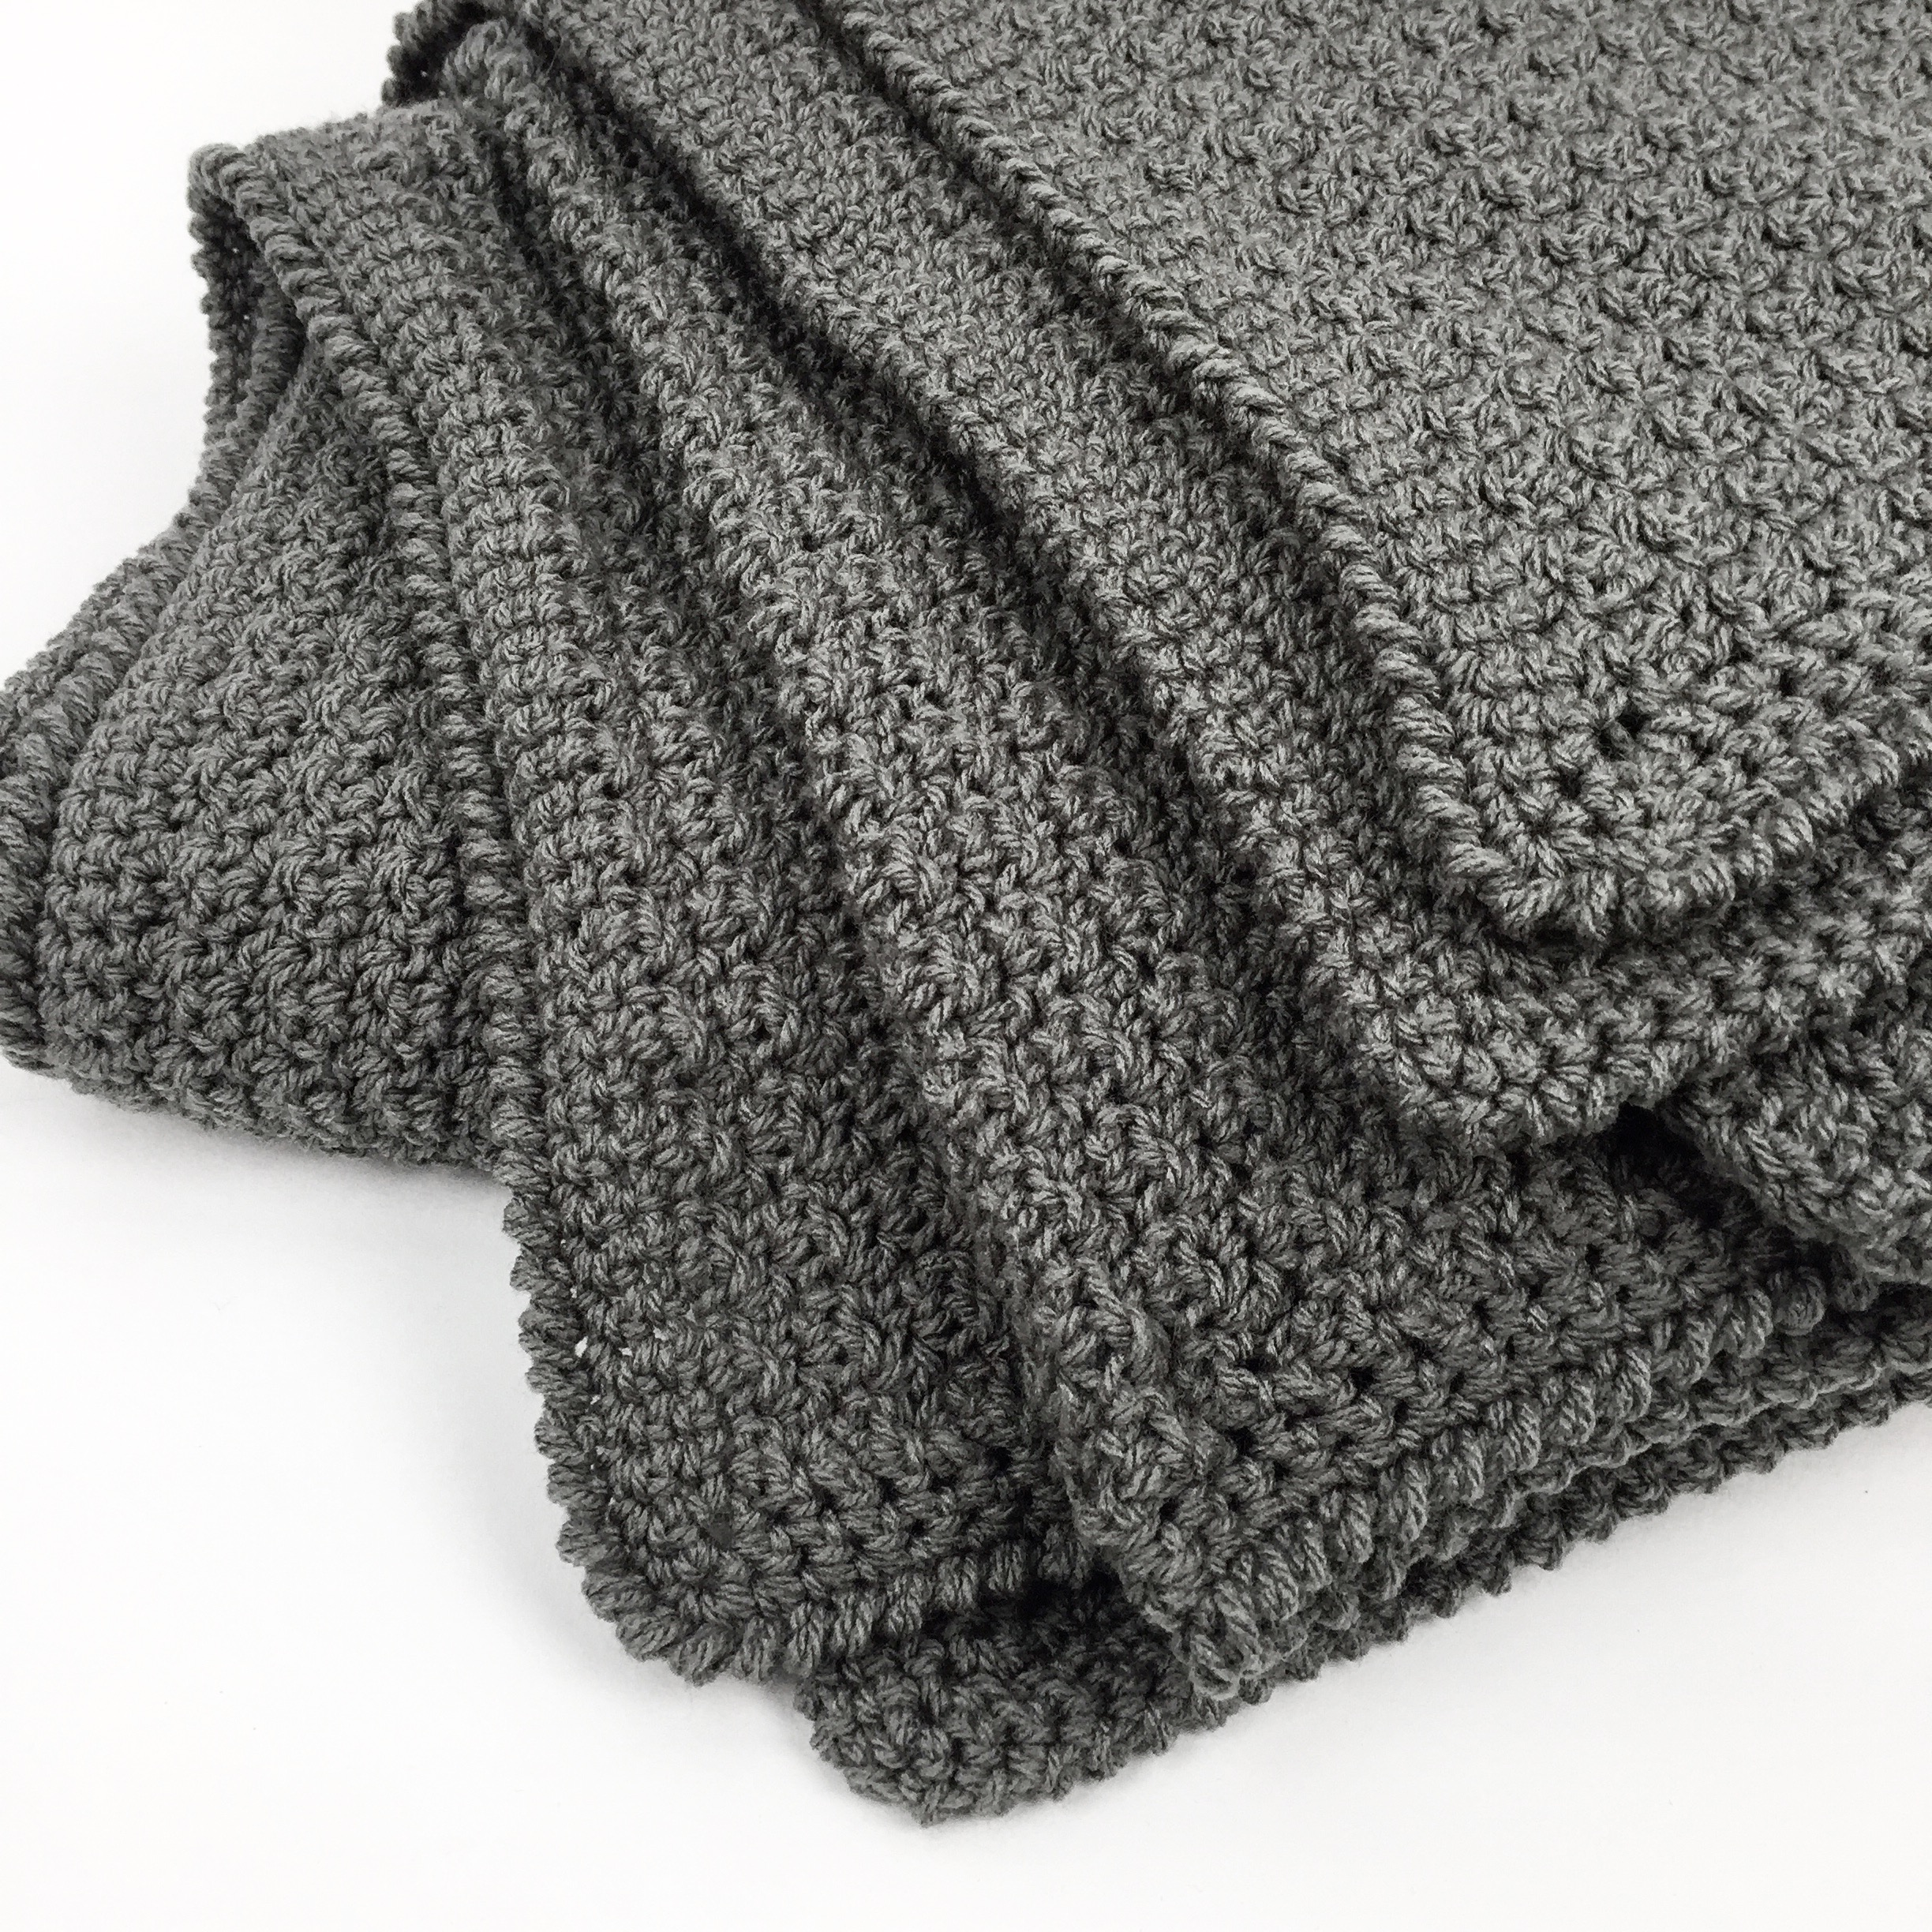 Handmade Crochet Throw Dark Grey Artigaprest